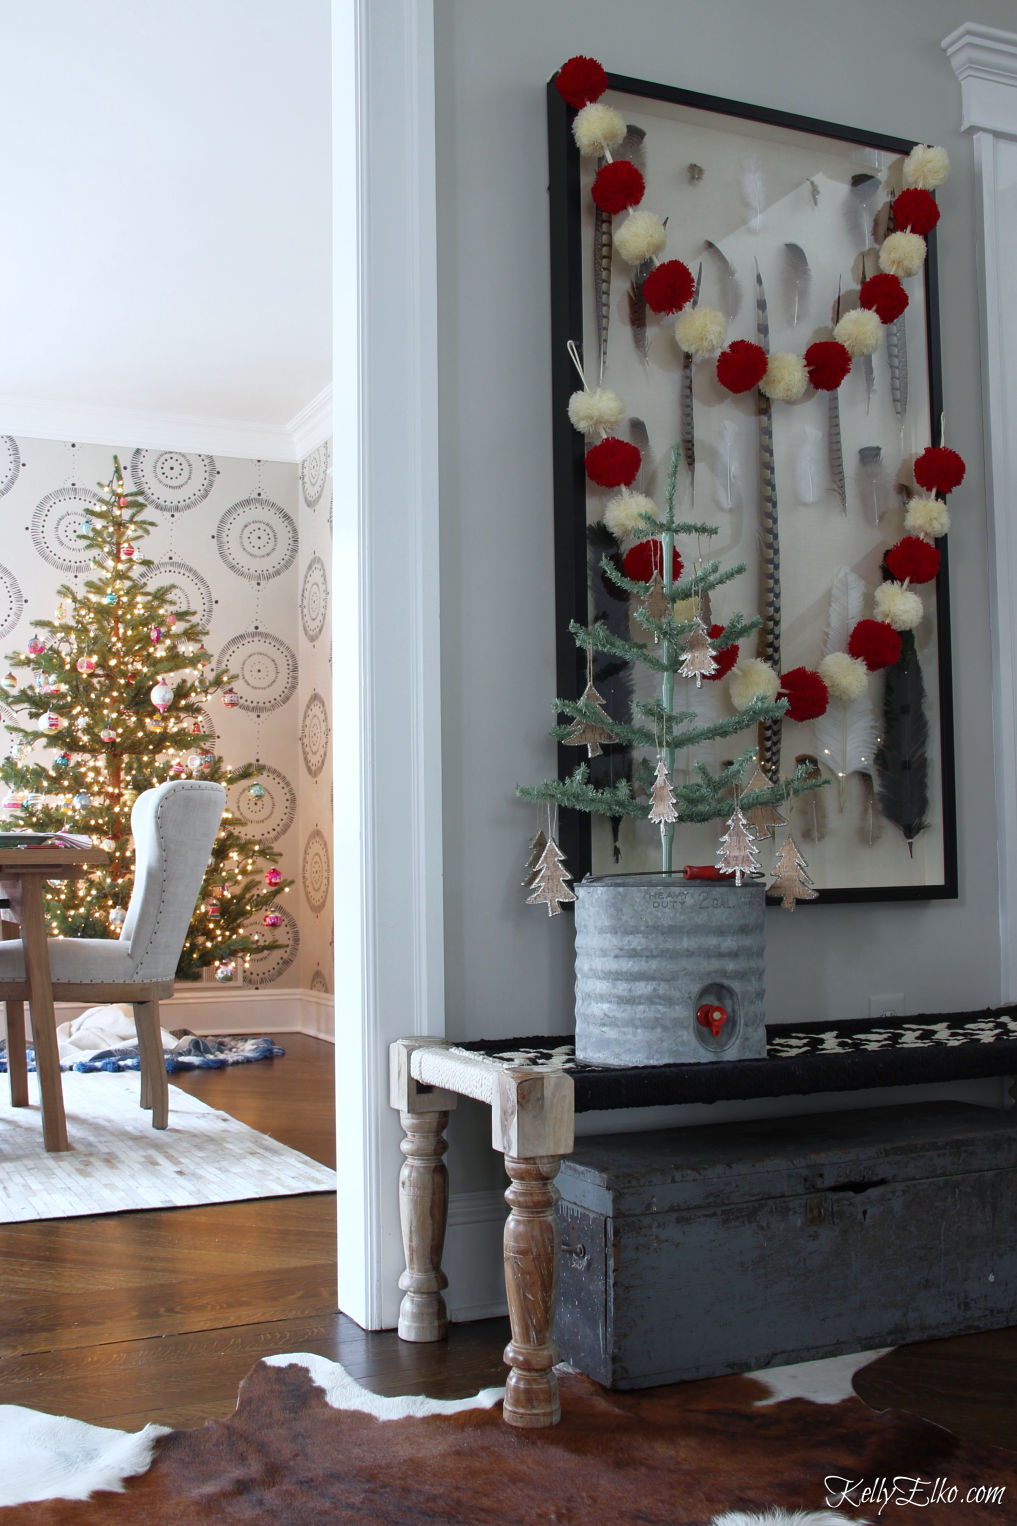 Beautiful Christmas home tour - love the pom pom garland hung over the art and the sparse Christmas tree kellyelko.com #christmas #christmasdecor #christmastree #christmasfoyer #christmasgarland #pompom #farmhousechristmas #vintagechristmas